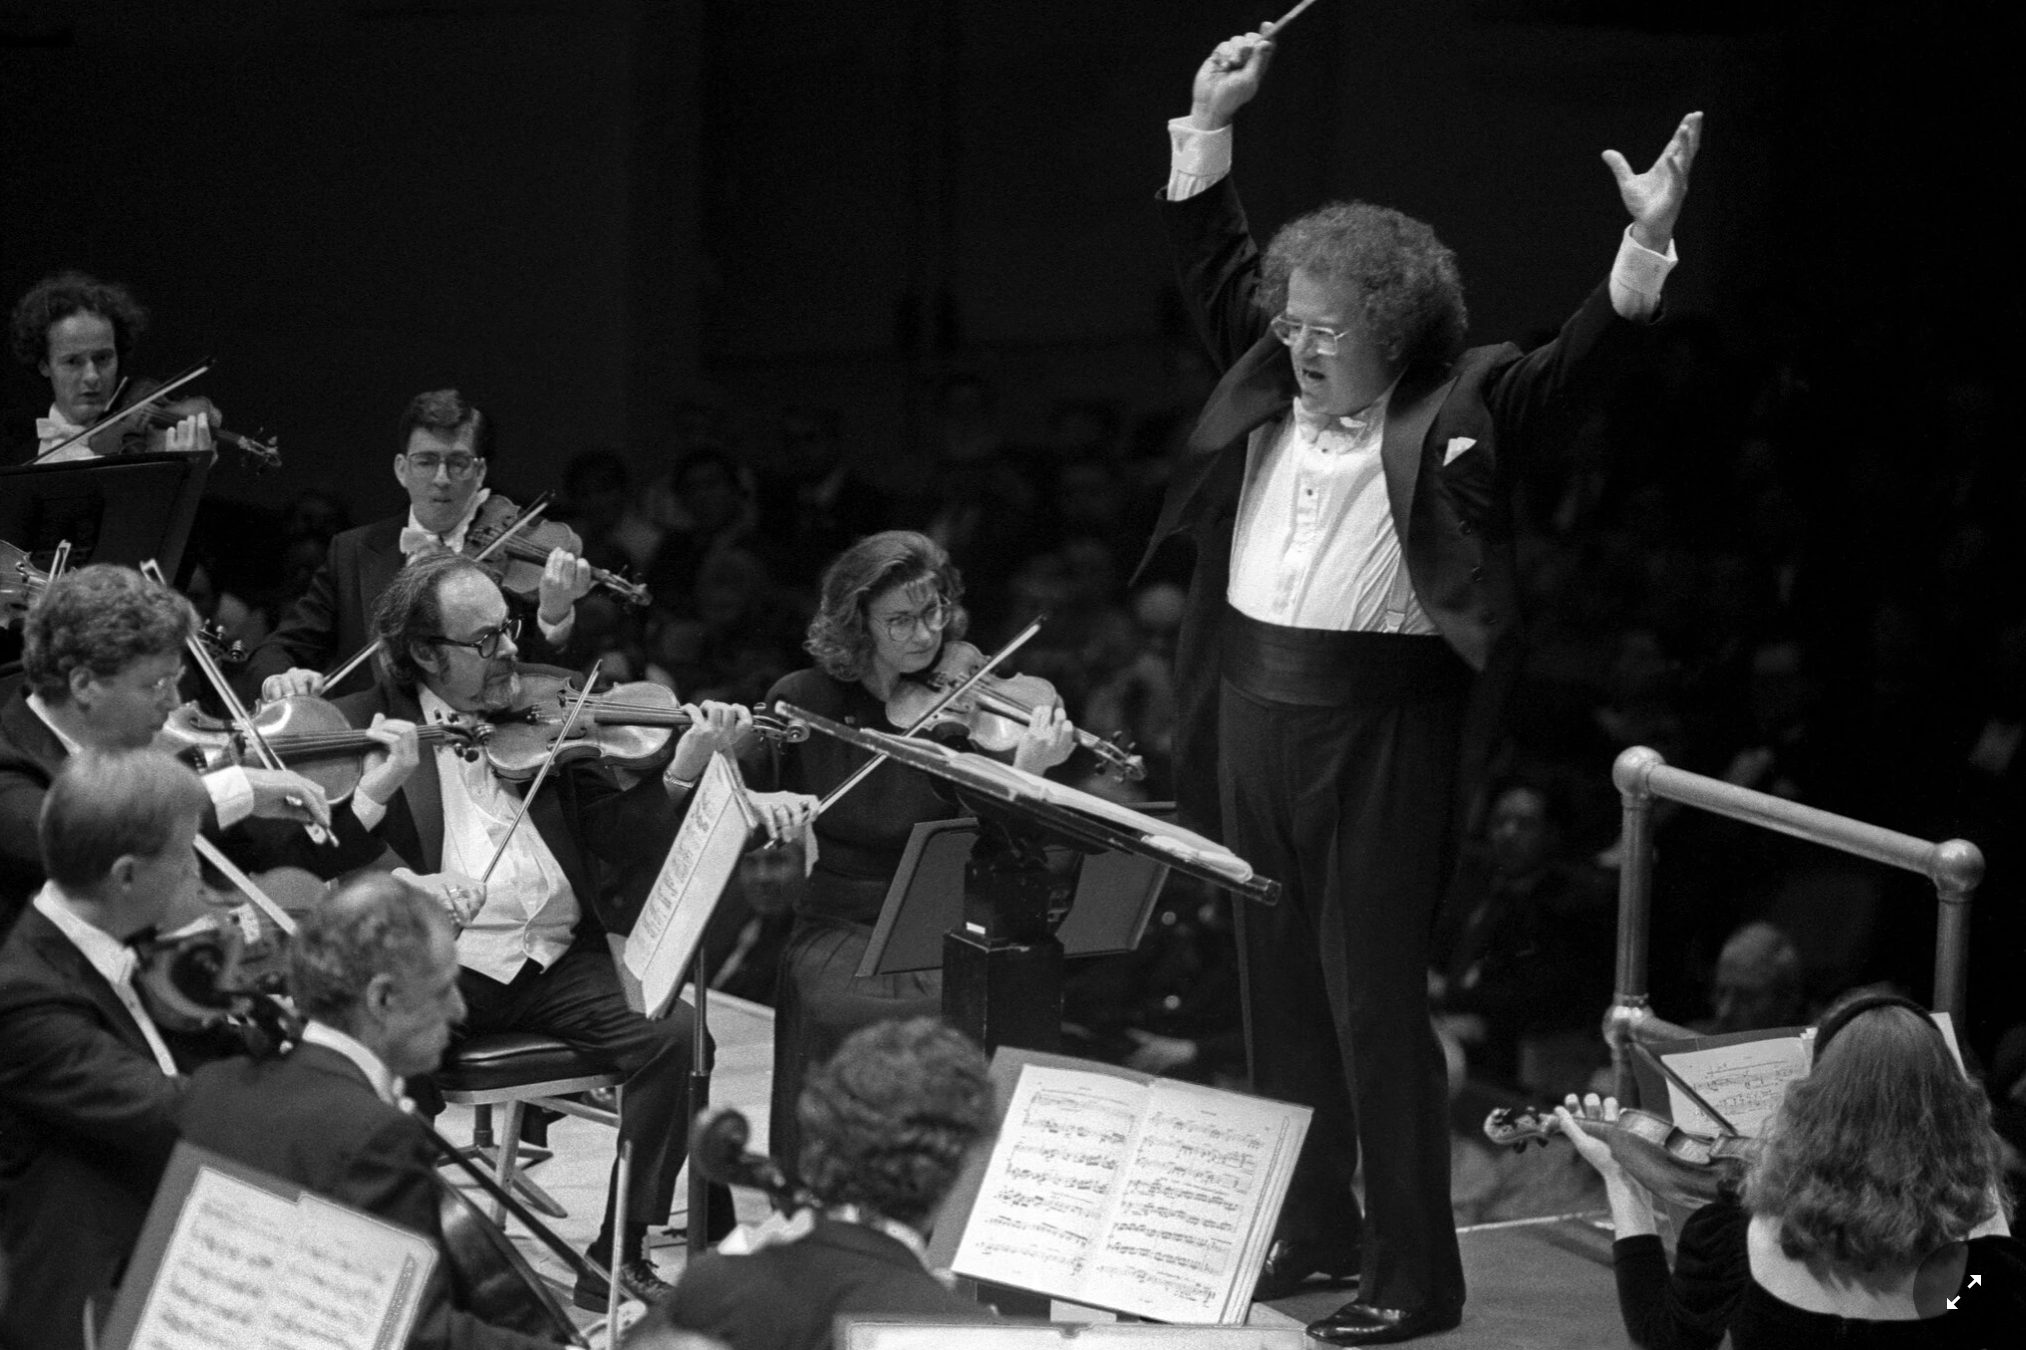 Taking Stock of James Levine's Tarnished Legacy